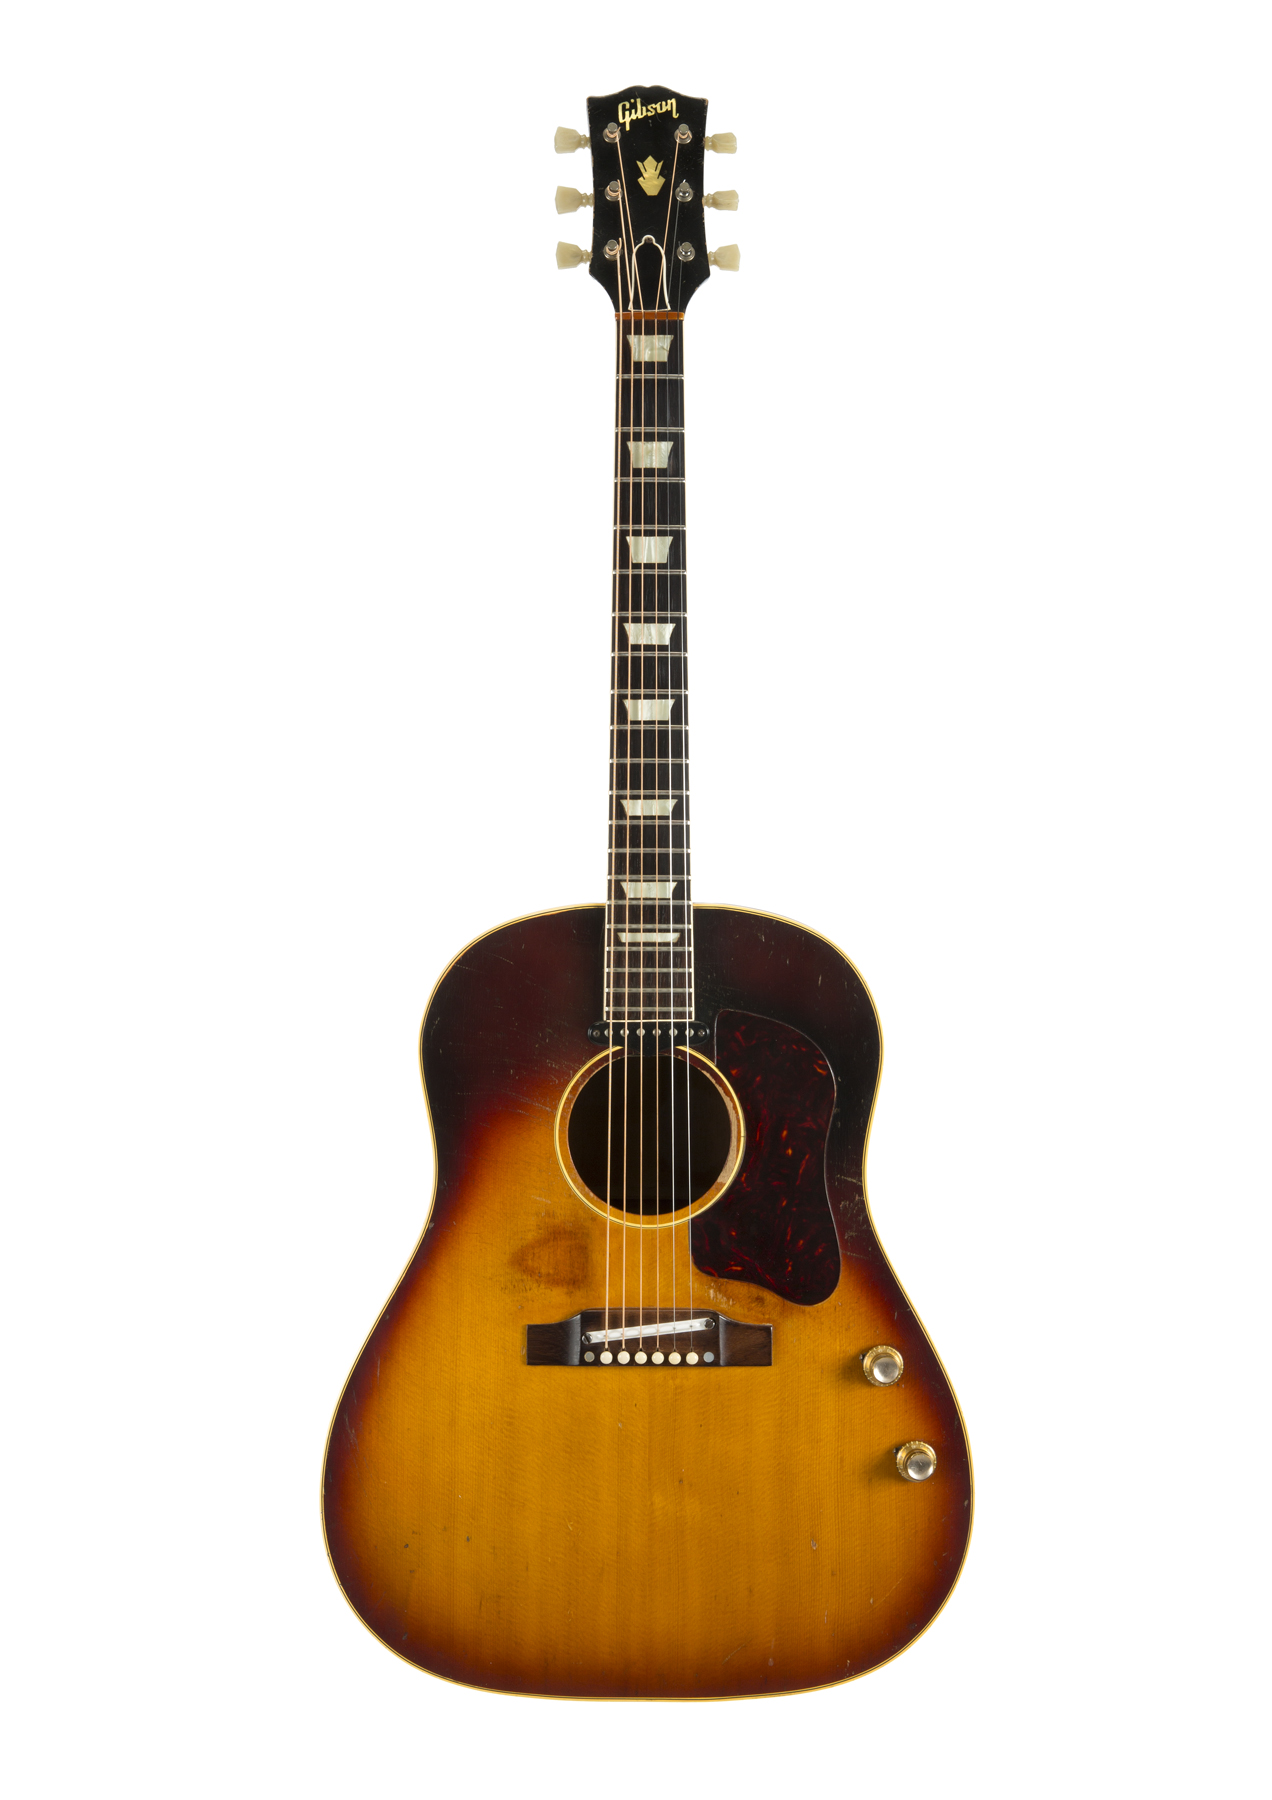 A 1962 Gibson acoustic guitar, owned and used by John Lennon. Julien's Auctions sold it in November 2015 for $2.4 million--a record for any guitar at auction.